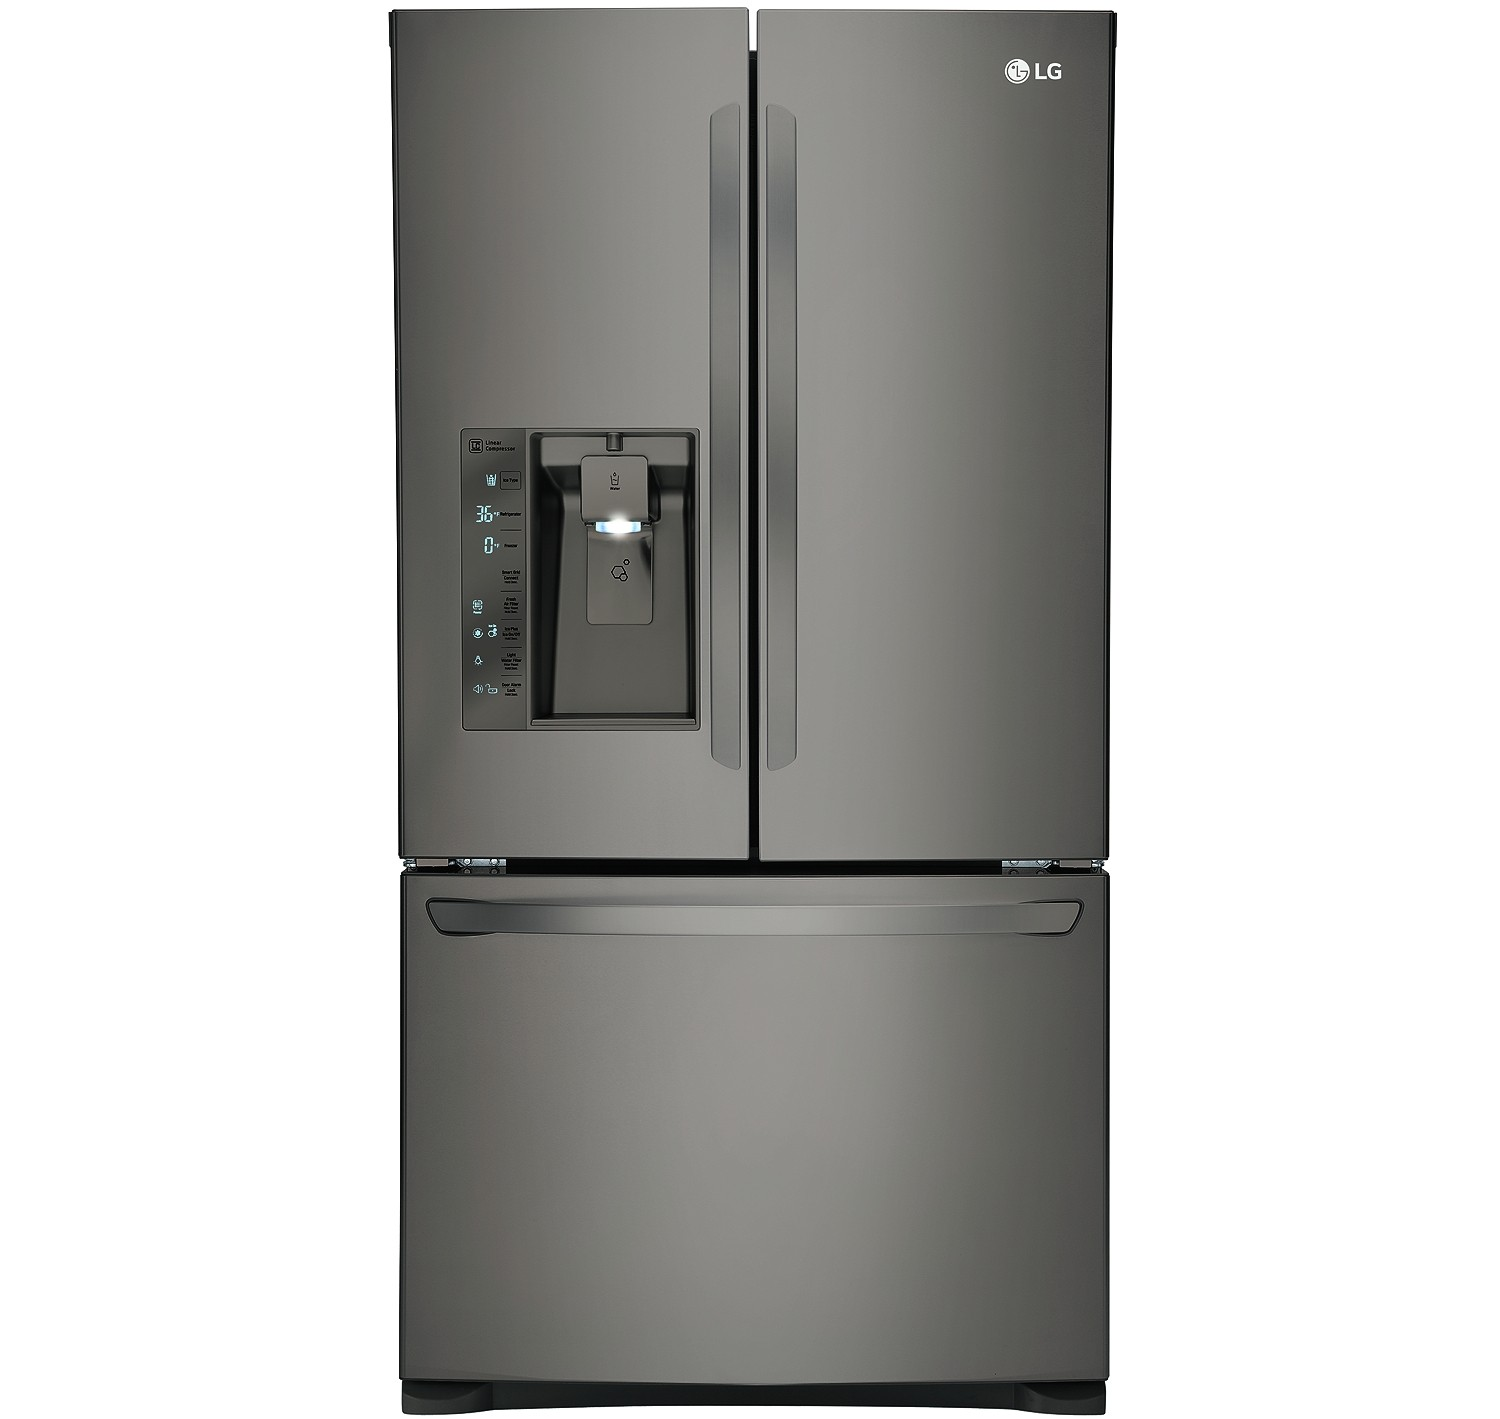 Best Rated Counter Depth Refrigerator with Bottom Freezer Lg Counter Depth Bottom Freezer Refrigerator Lfxc24726d